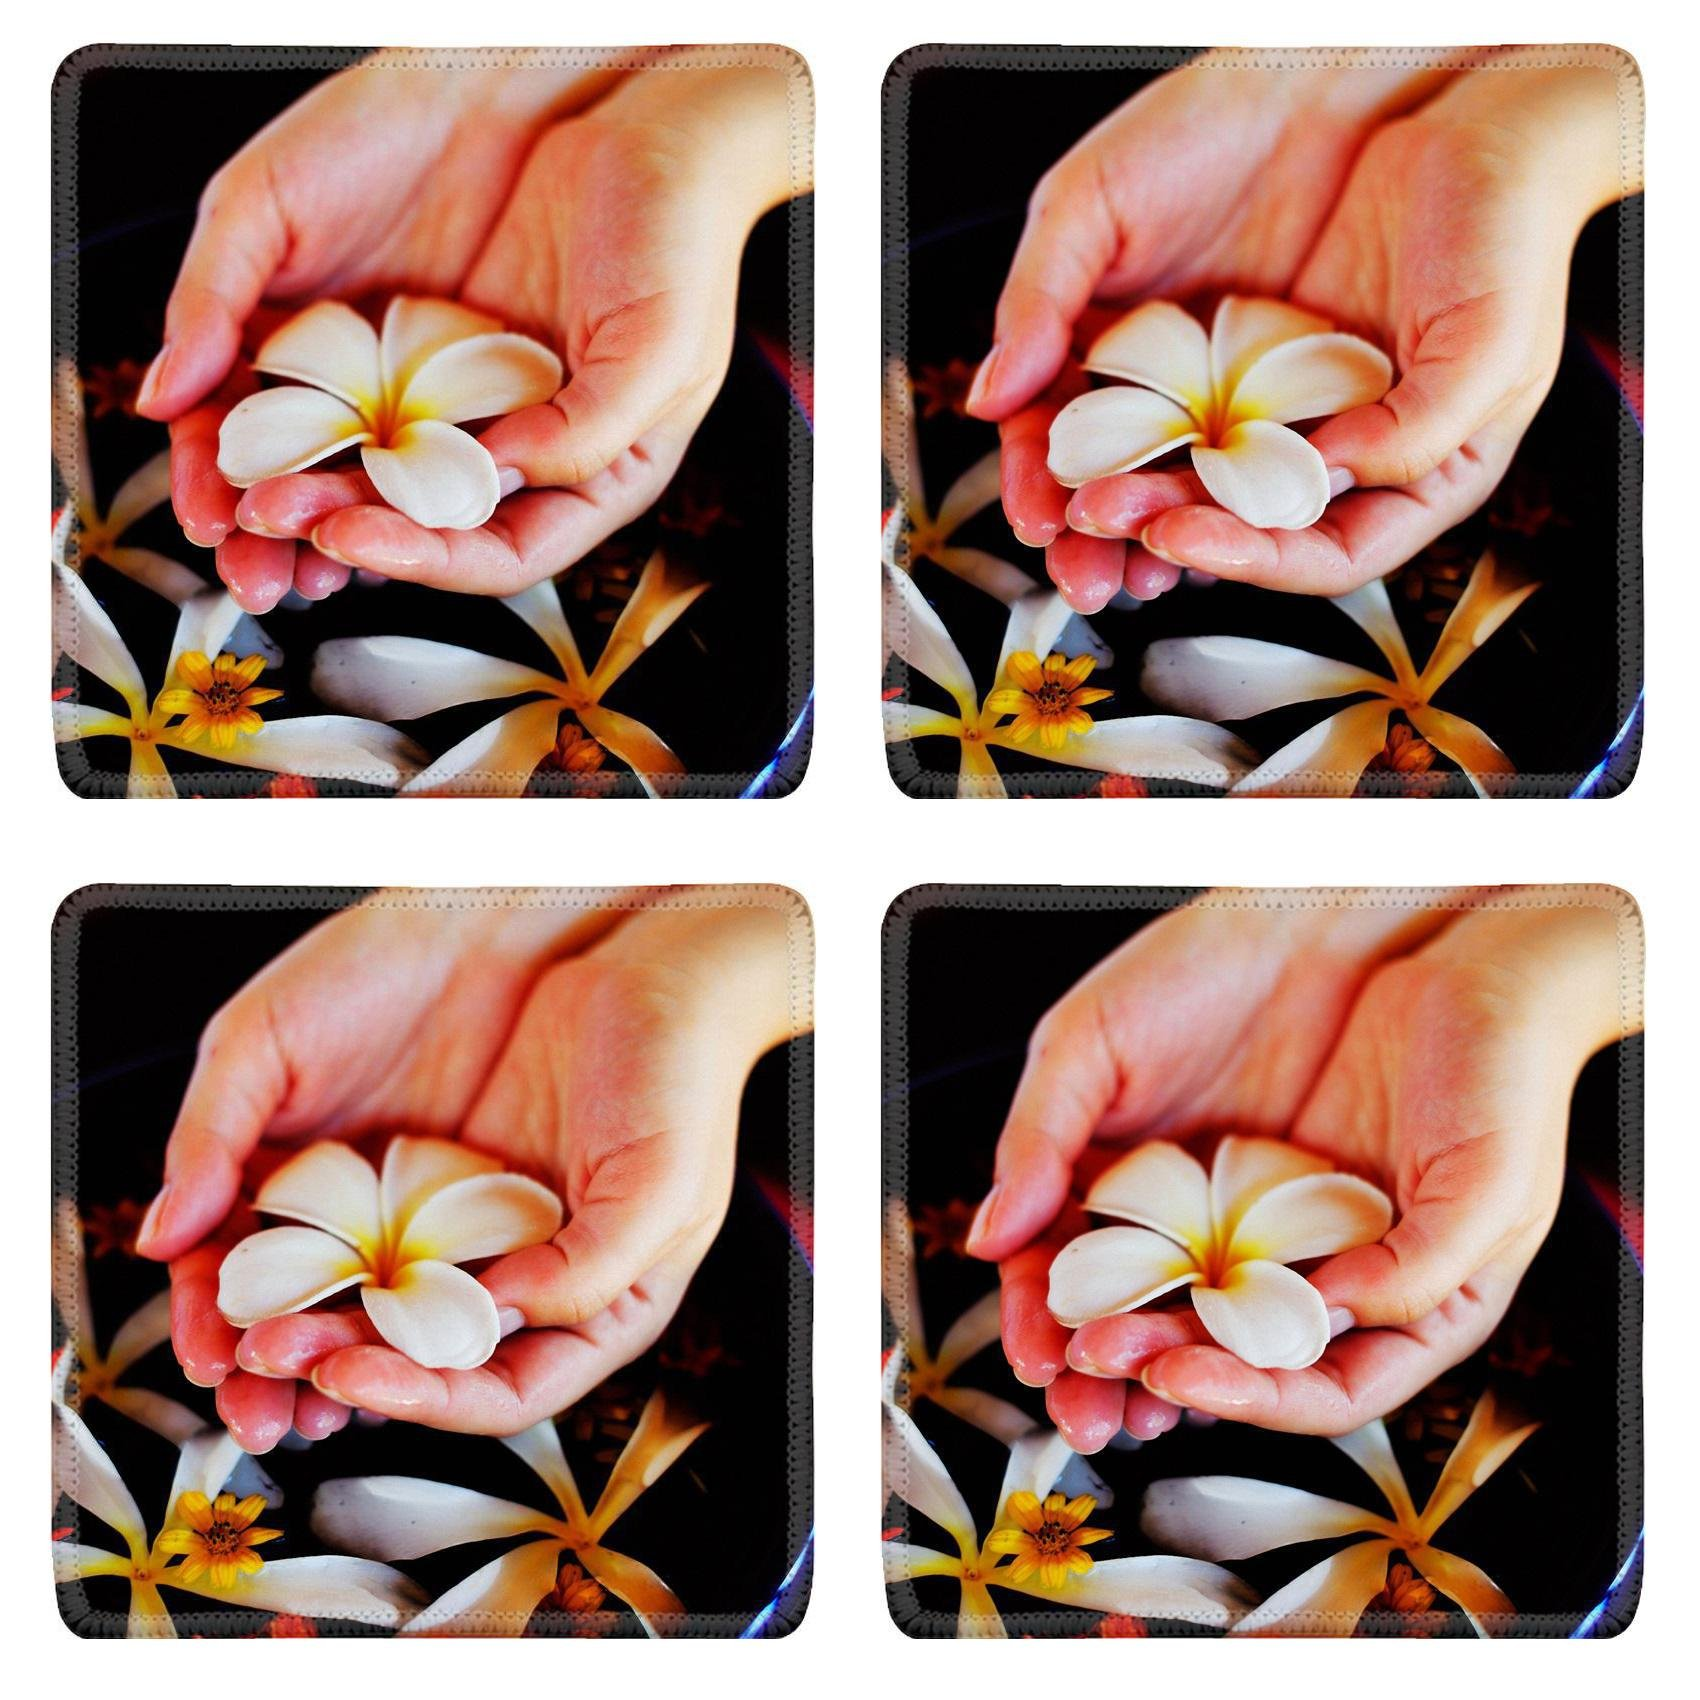 MSD Square Coasters Non-Slip Natural Rubber Desk Coasters design 20580340 spa and beauty female hand and flower in water